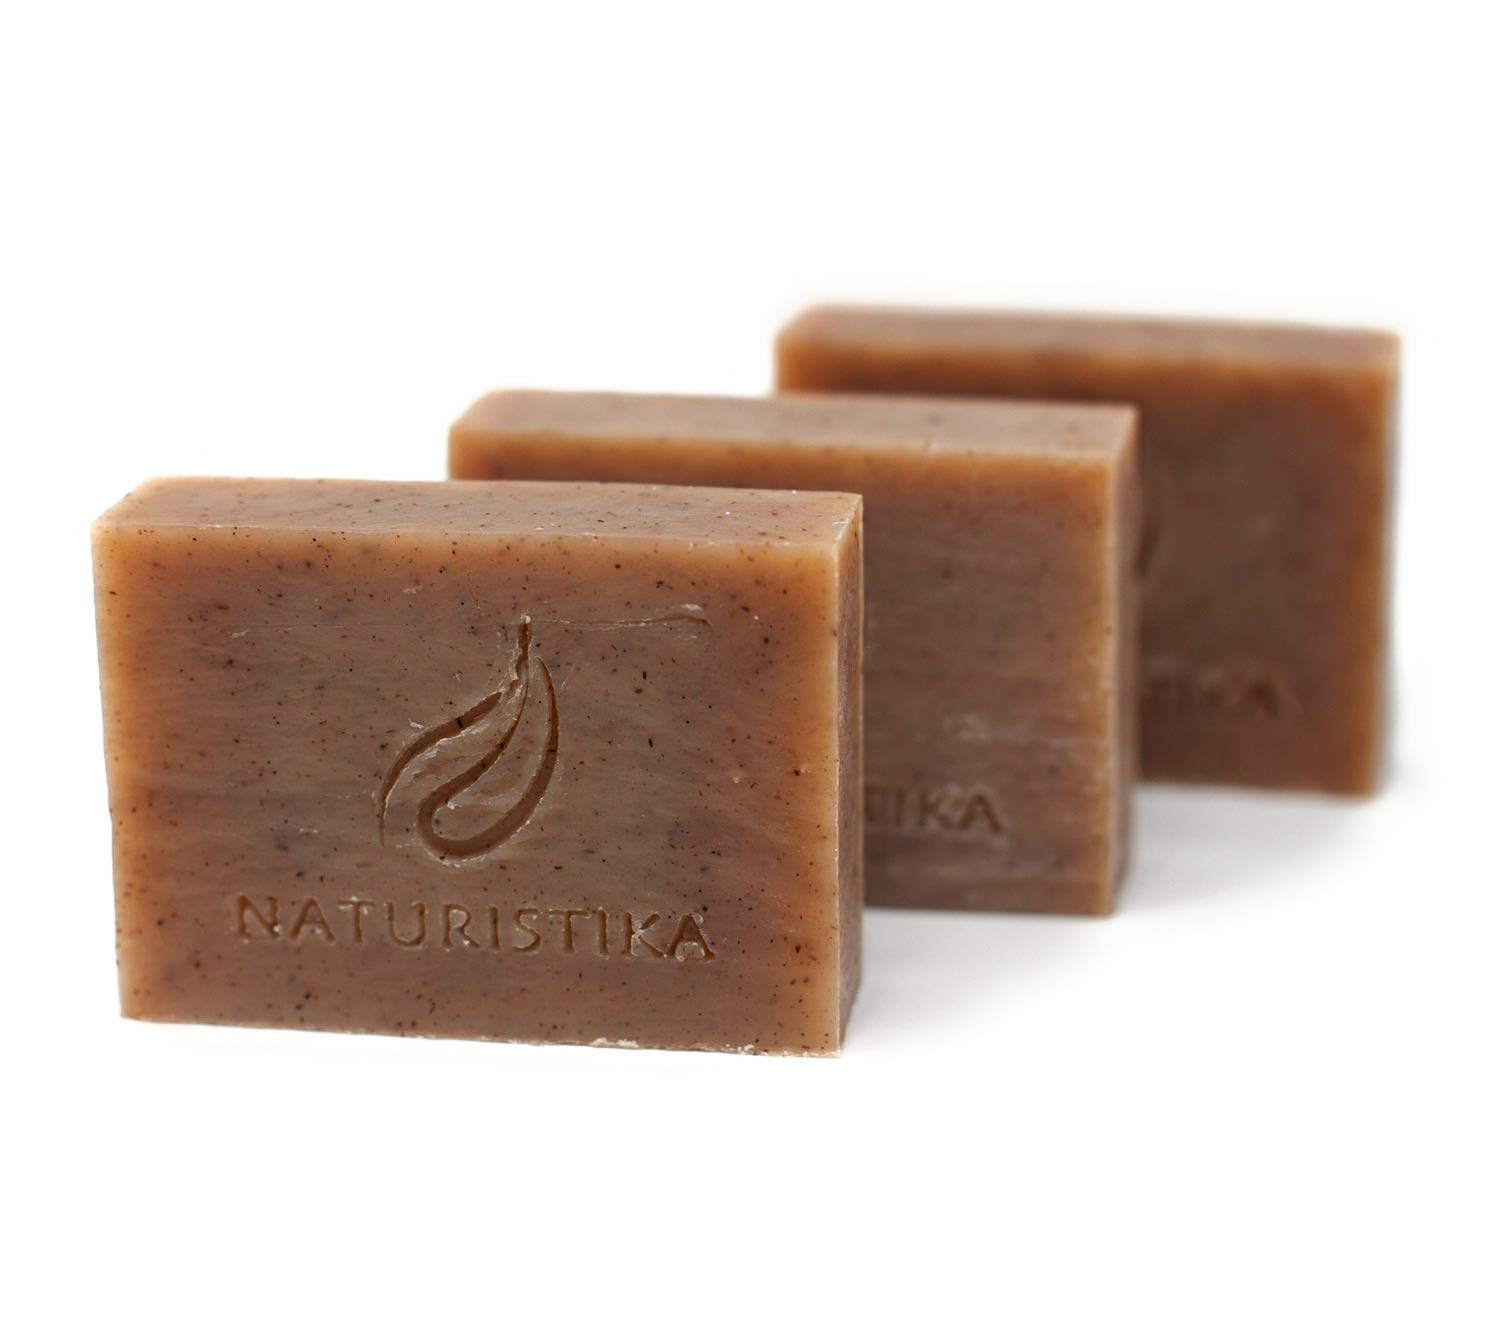 Black Currant Vanilla Soap Bar. Vegan All Natural Handcrafted with Organic Oils and Non-GMO ingredients. Face and Body…